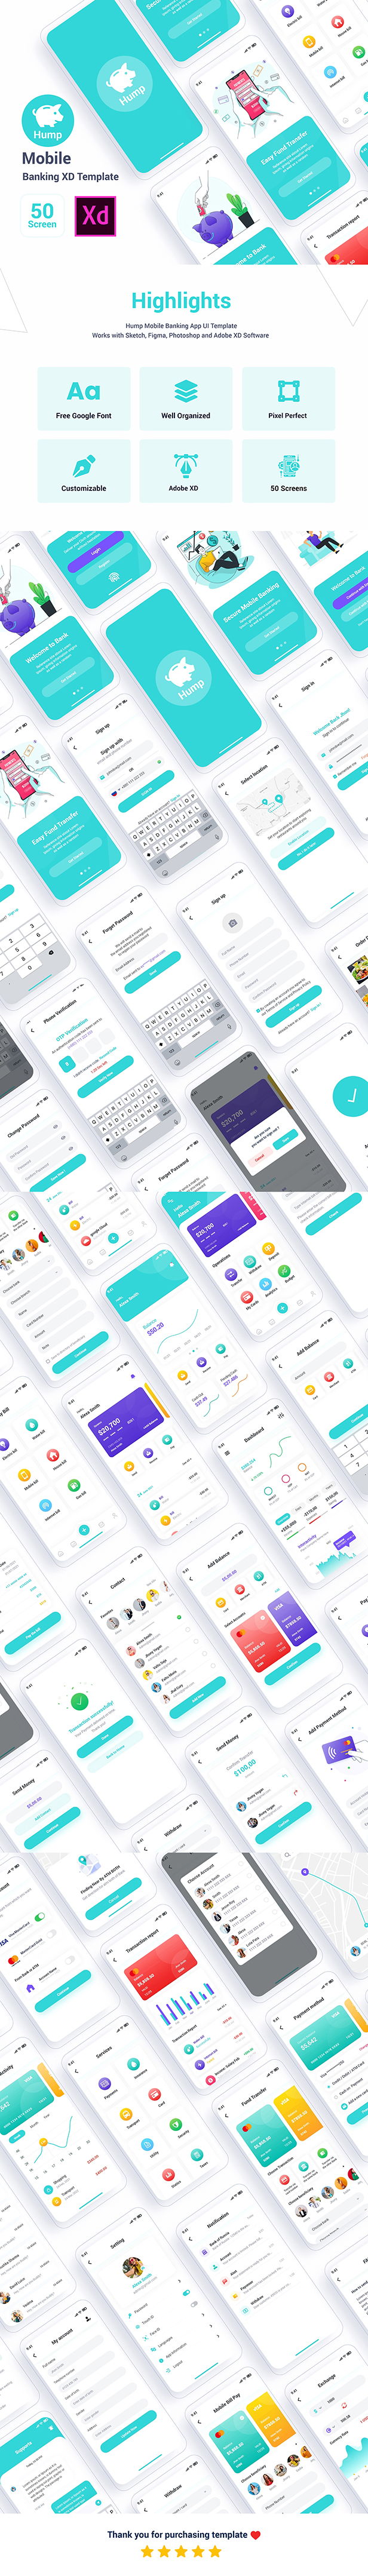 Hump – Mobile Banking Adobe XD Template - 1